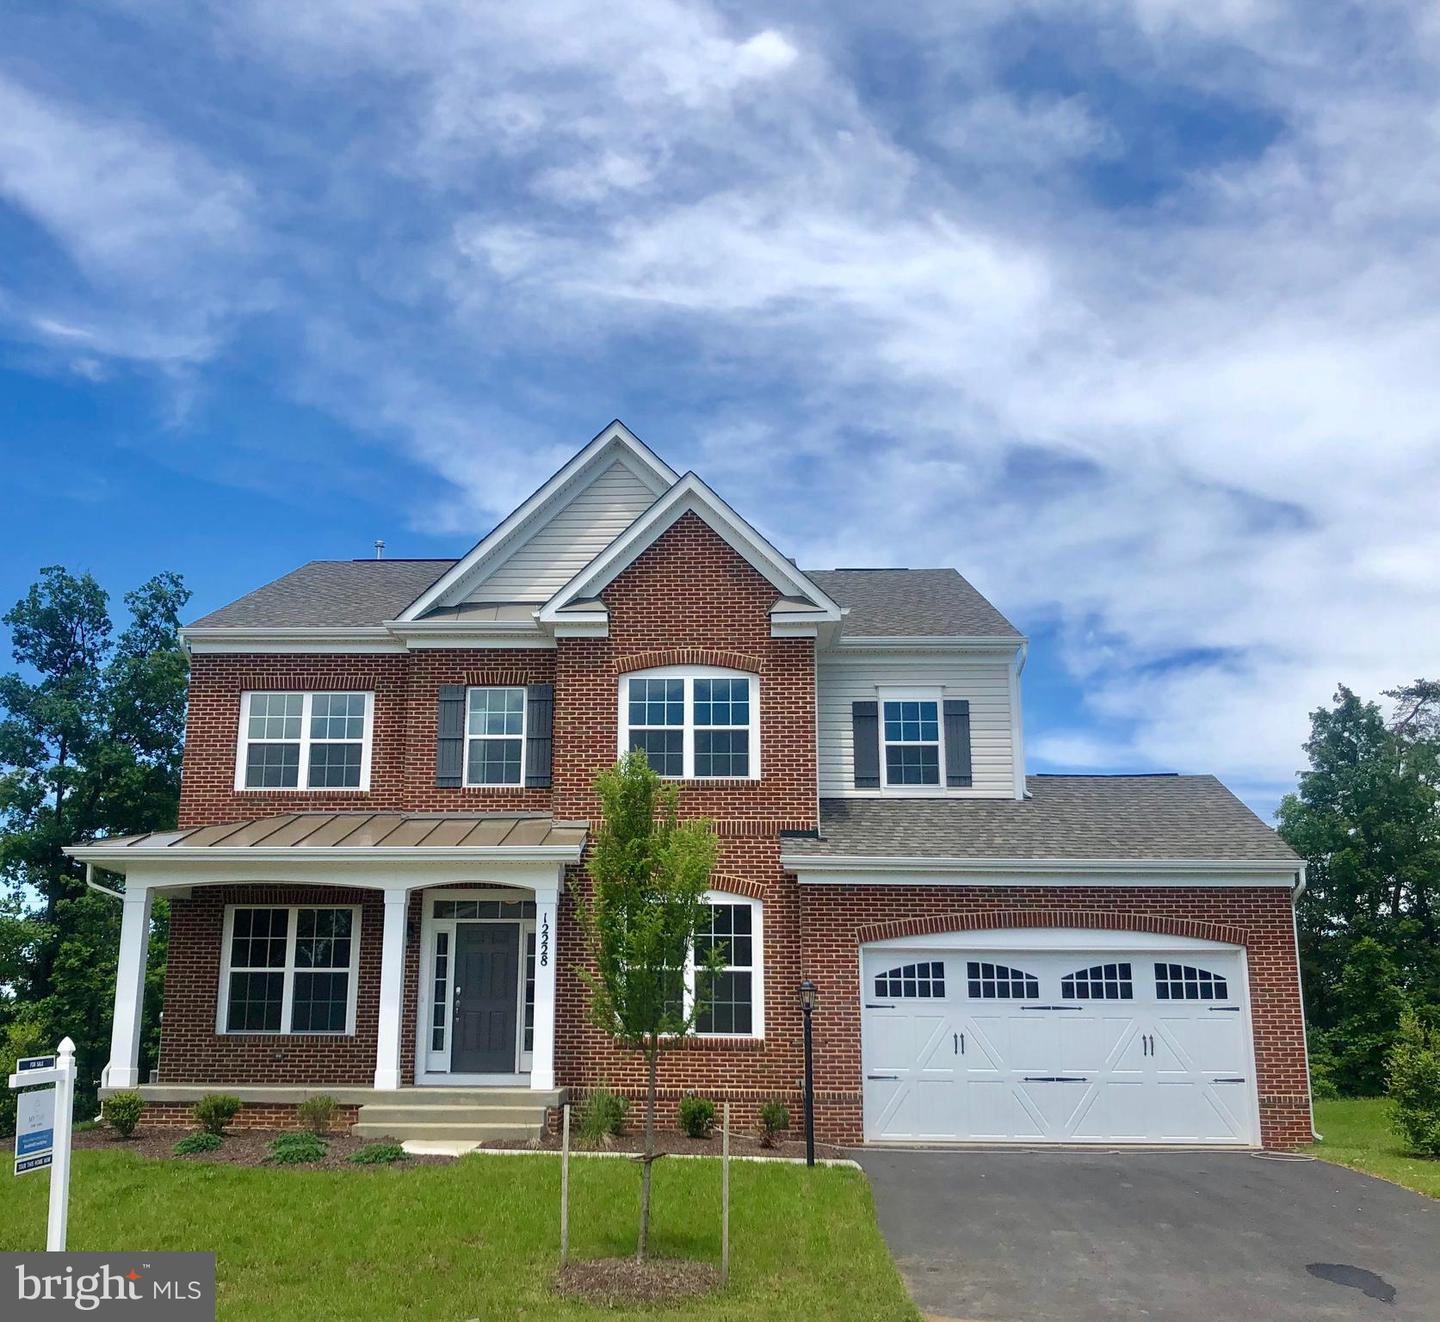 Single Family for Sale at 12228 Sedge St Bristow, Virginia 20136 United States